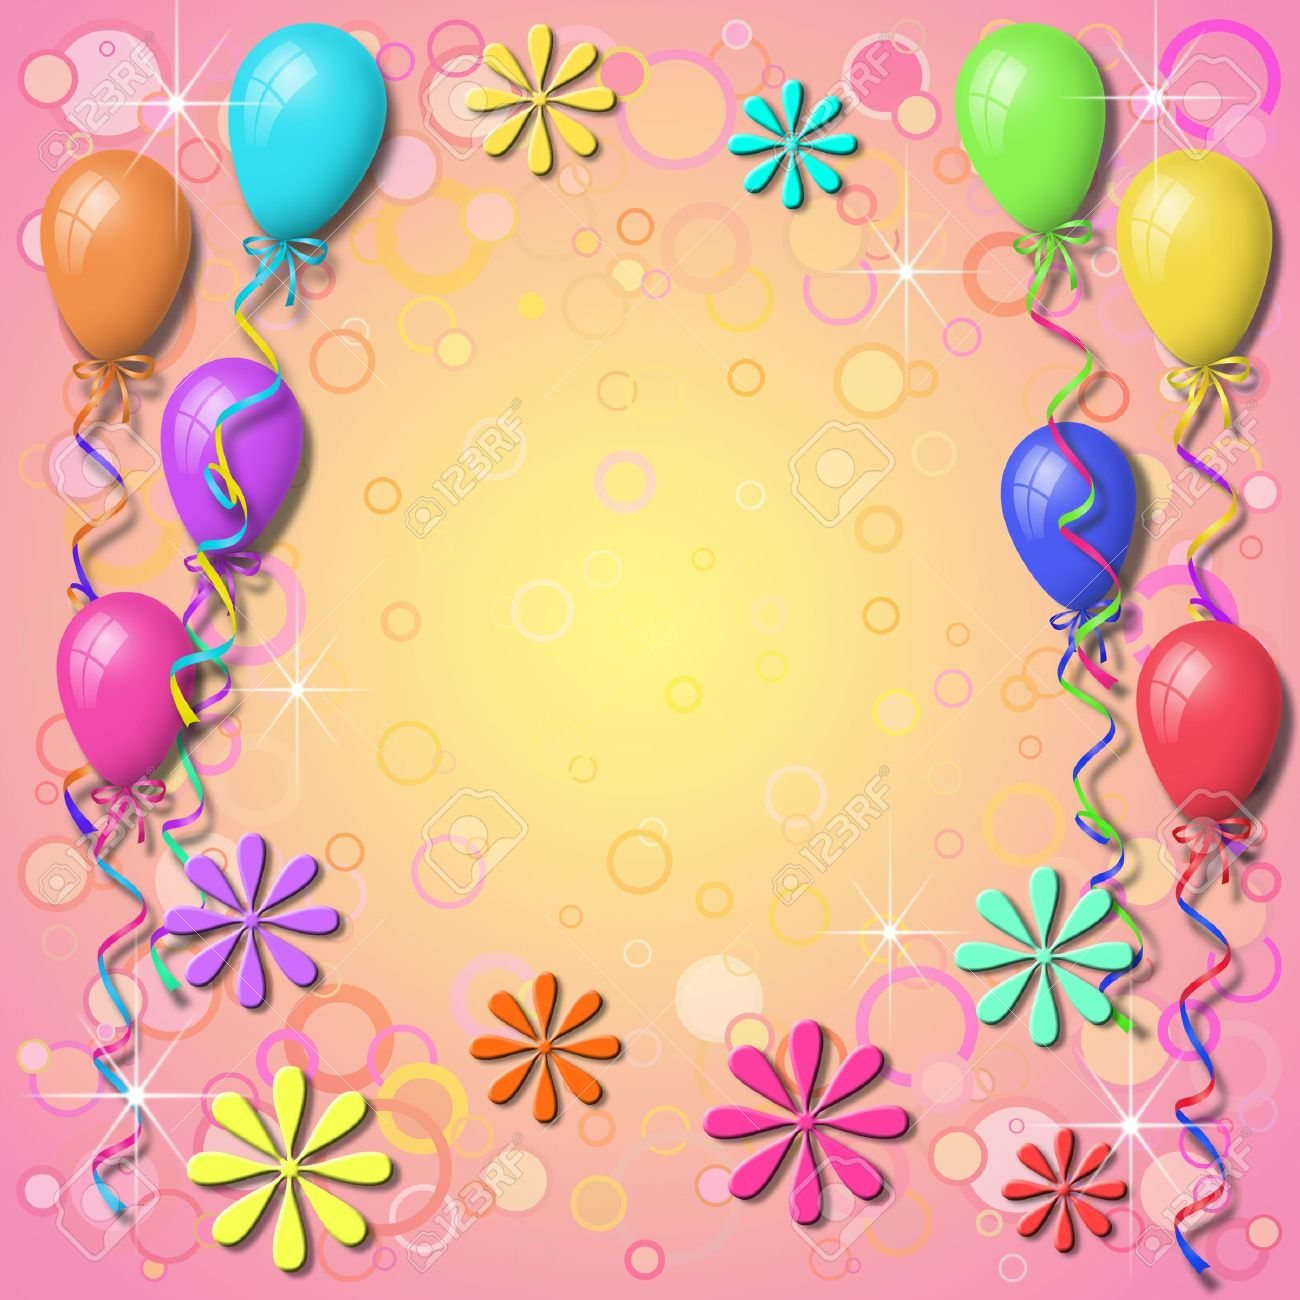 Balloon Background Border With Circles Stock Photo, Picture And ...